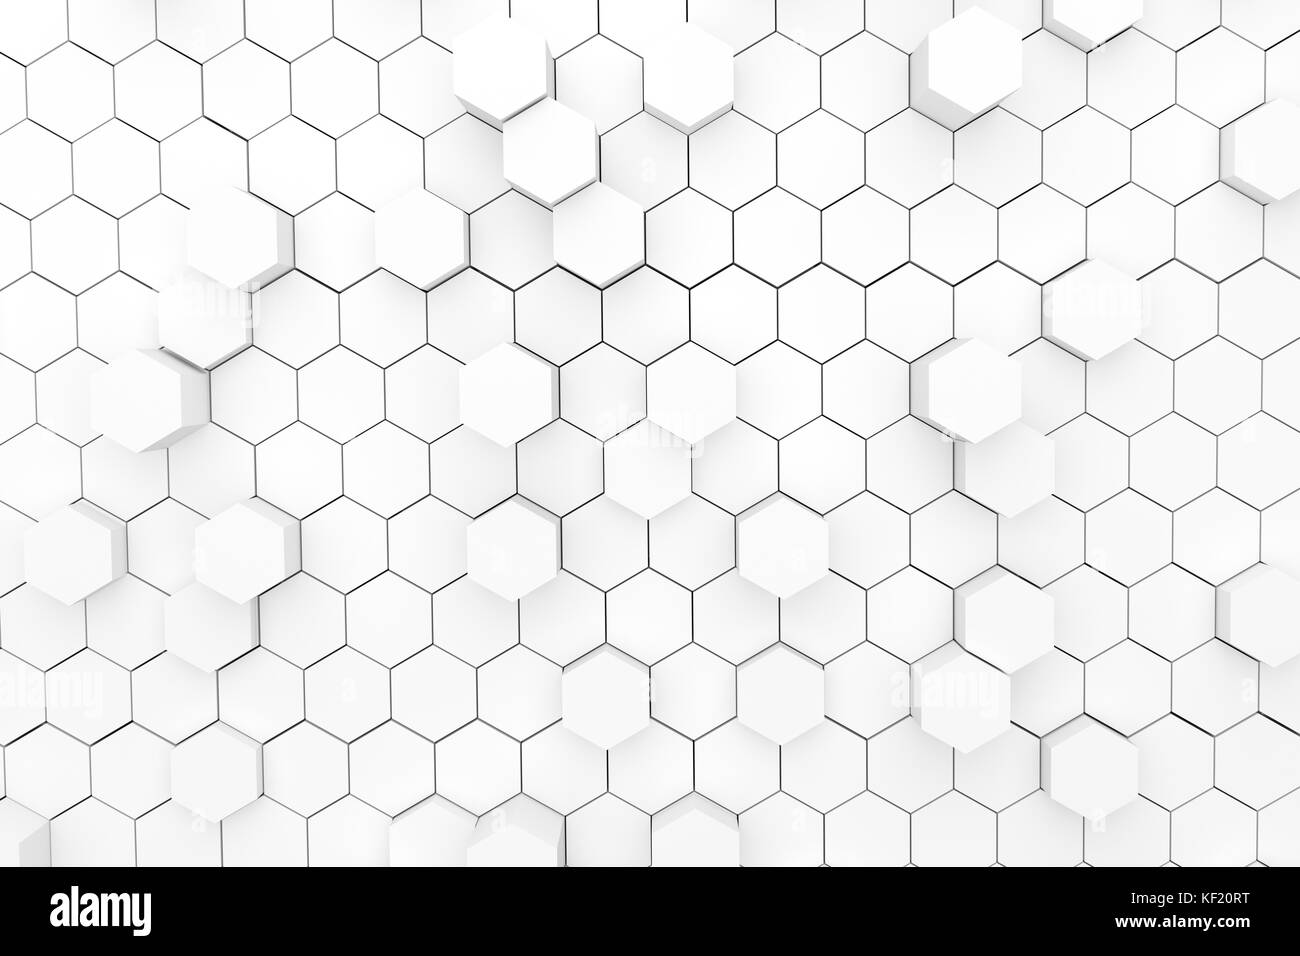 white abstract background hexagons geometric style in 3D rendering - Stock Image